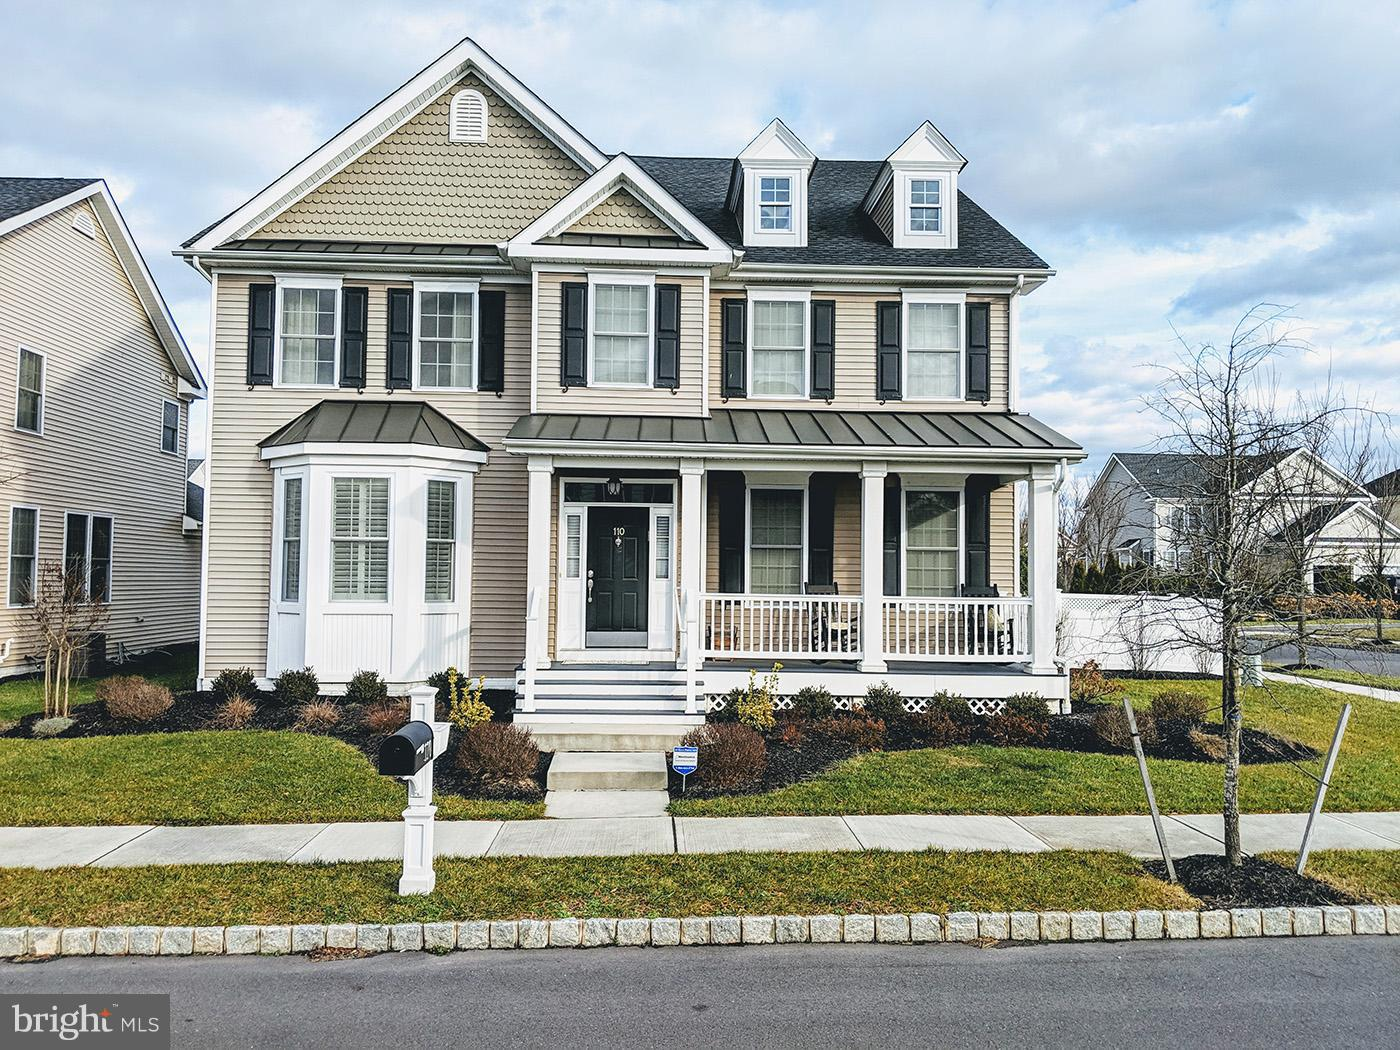 110 ATISON, CHESTERFIELD, NJ 08505